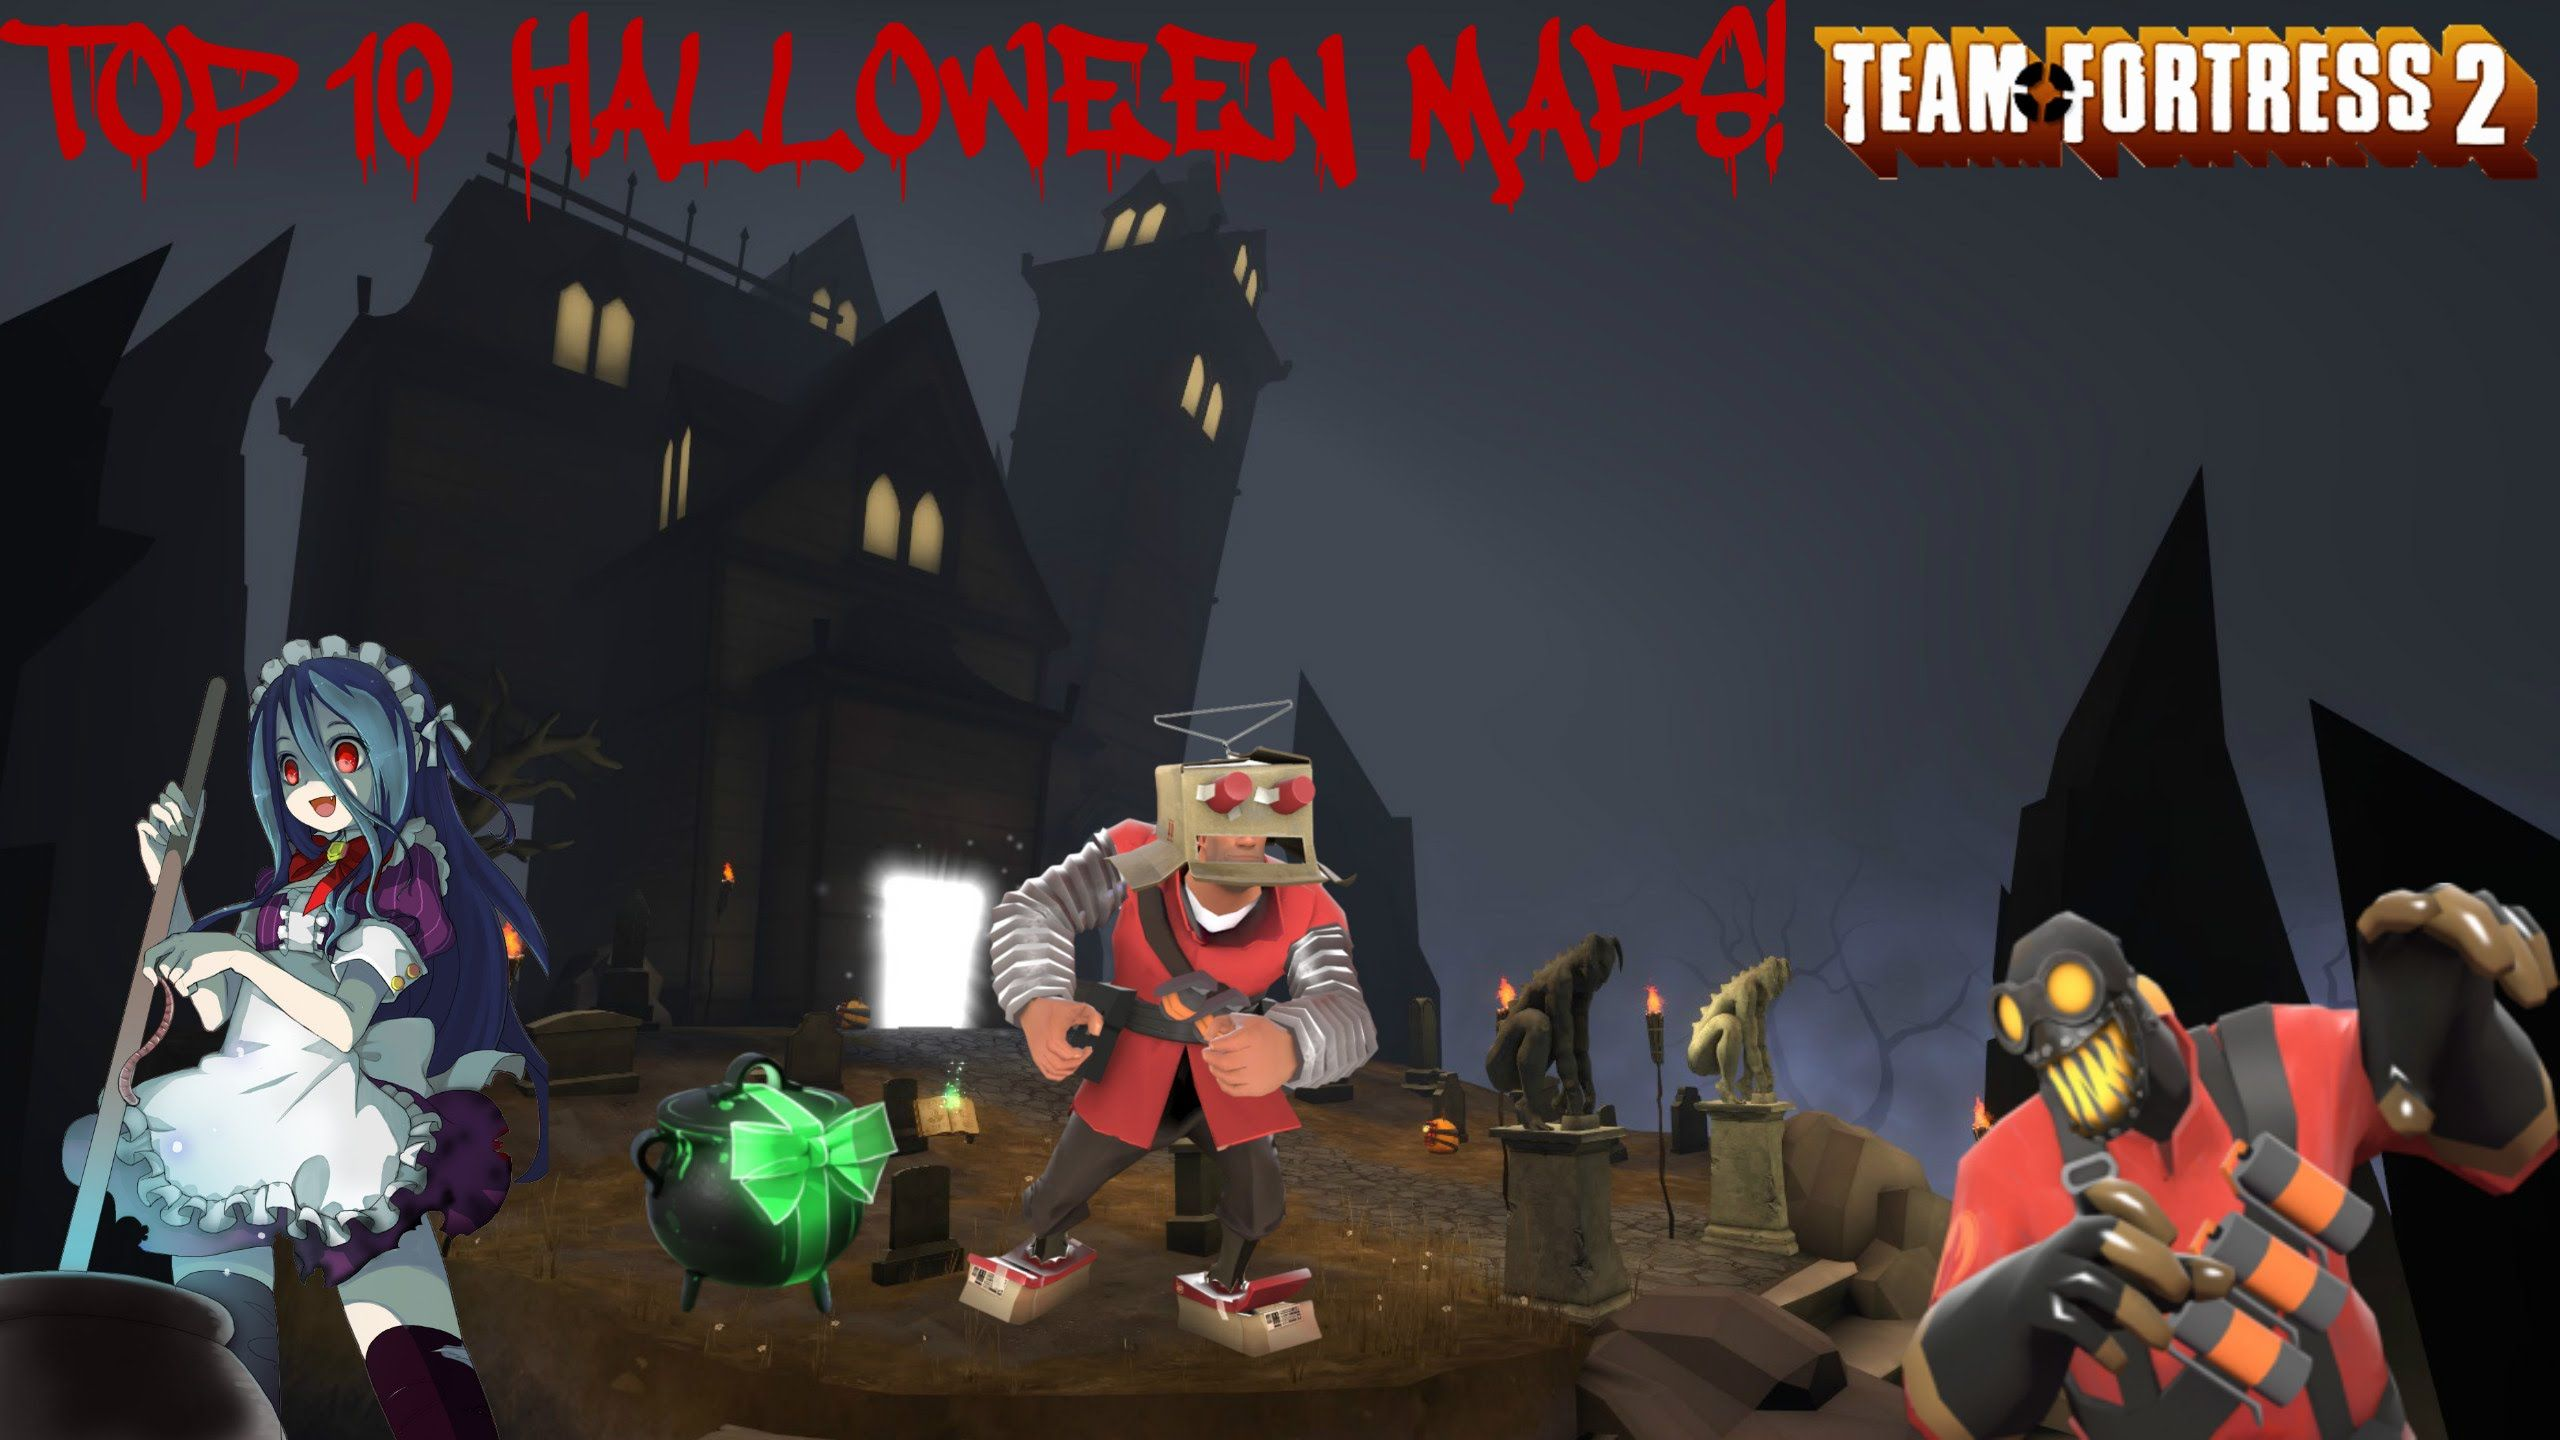 TF2: Top 10 Halloween Maps]-[2016!]   [!Video and Image Club ...